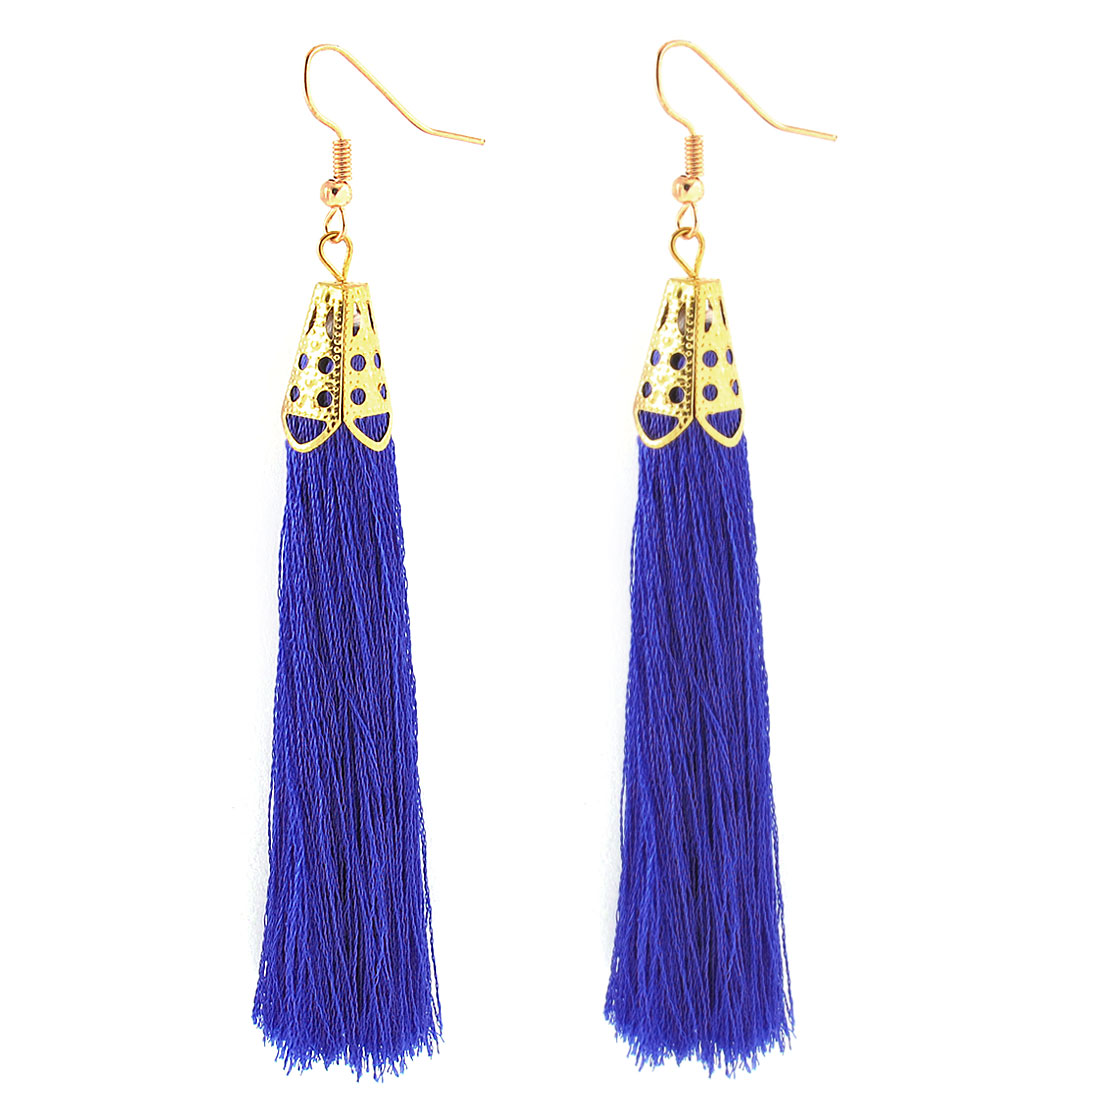 Fish Hook Long Nylon Tassel Drop Earrings Eardrop 2 Pcs Royalblue